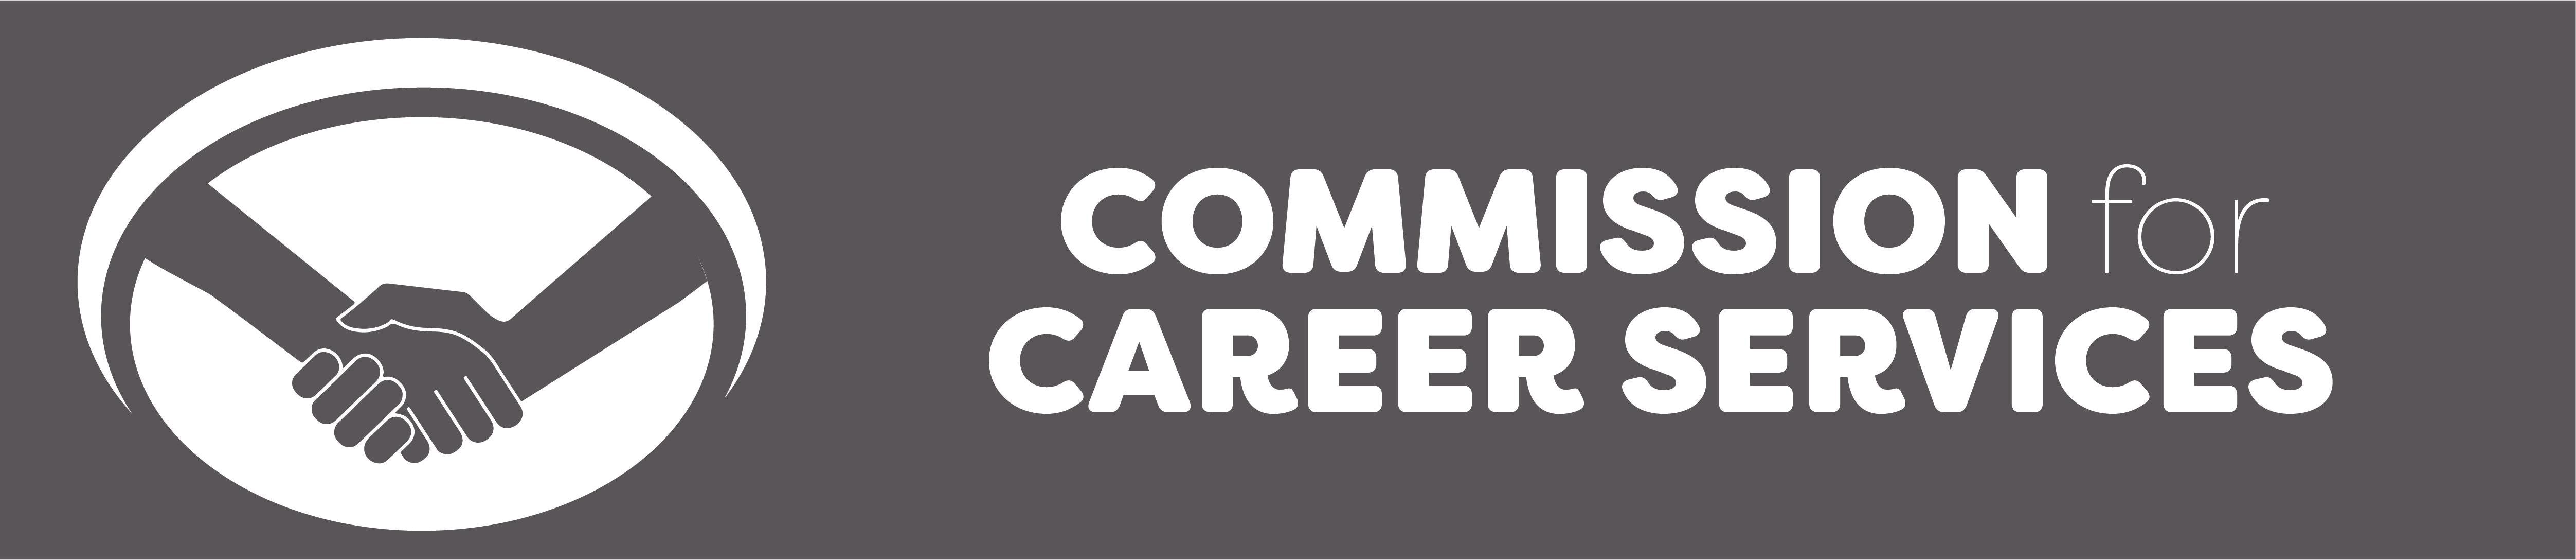 commission for career services logo